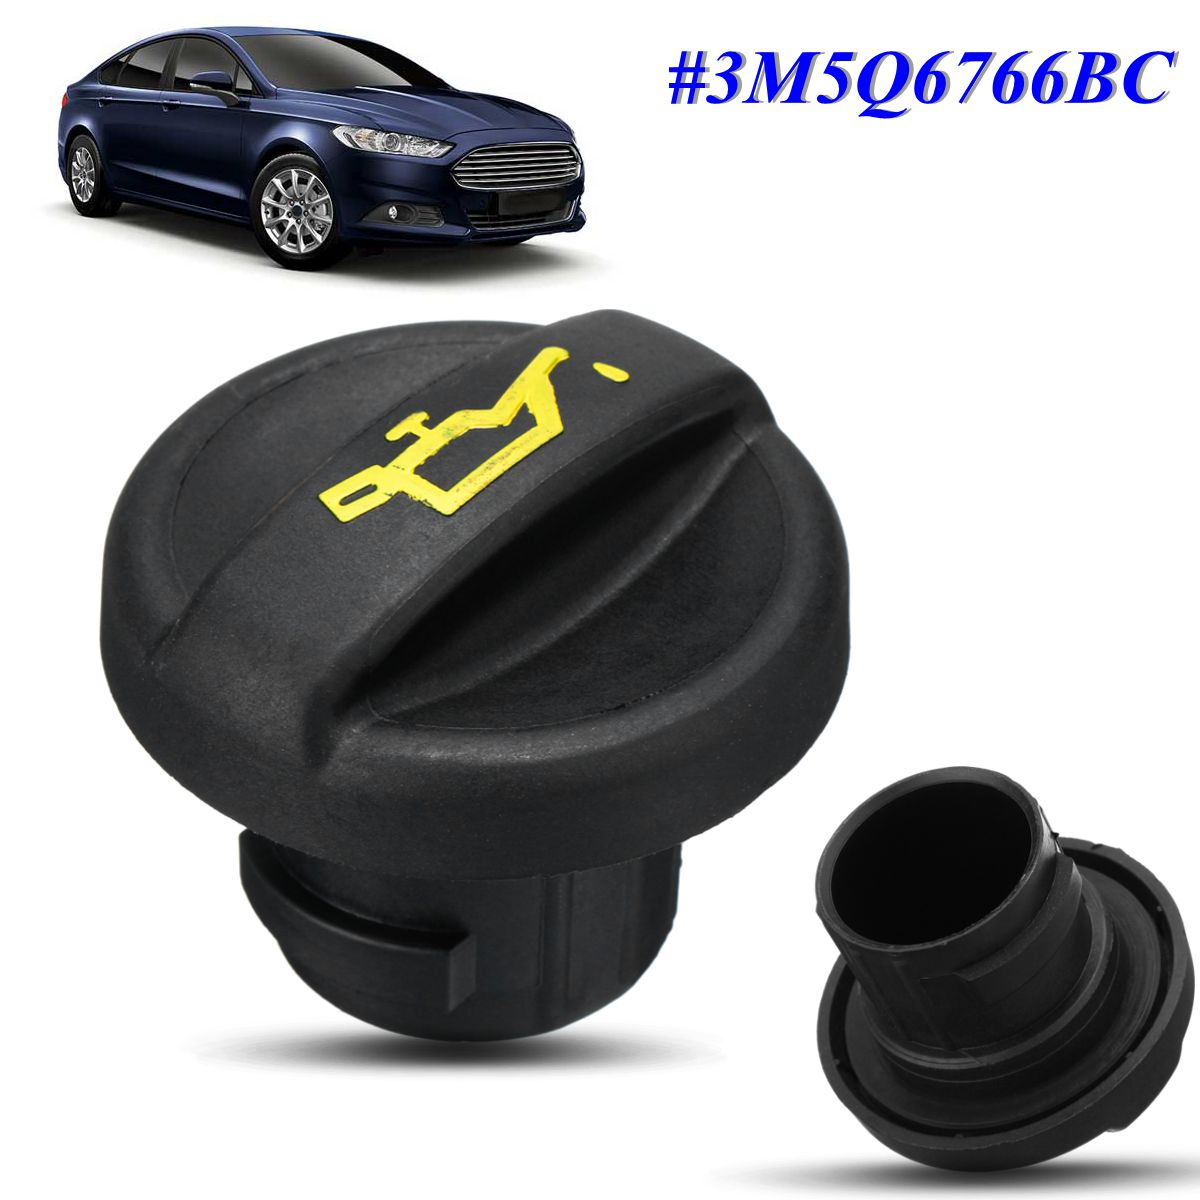 #1348368 #3M5Q6766BC Air Fuel Filter Cap For Ford/Focus/Mondeo/Kuga/C  MAX/MK4 1.4 1.6 2.0 2.2L 2003 2012 2011 2010 2009 2008-in Fuel Injector  from ...